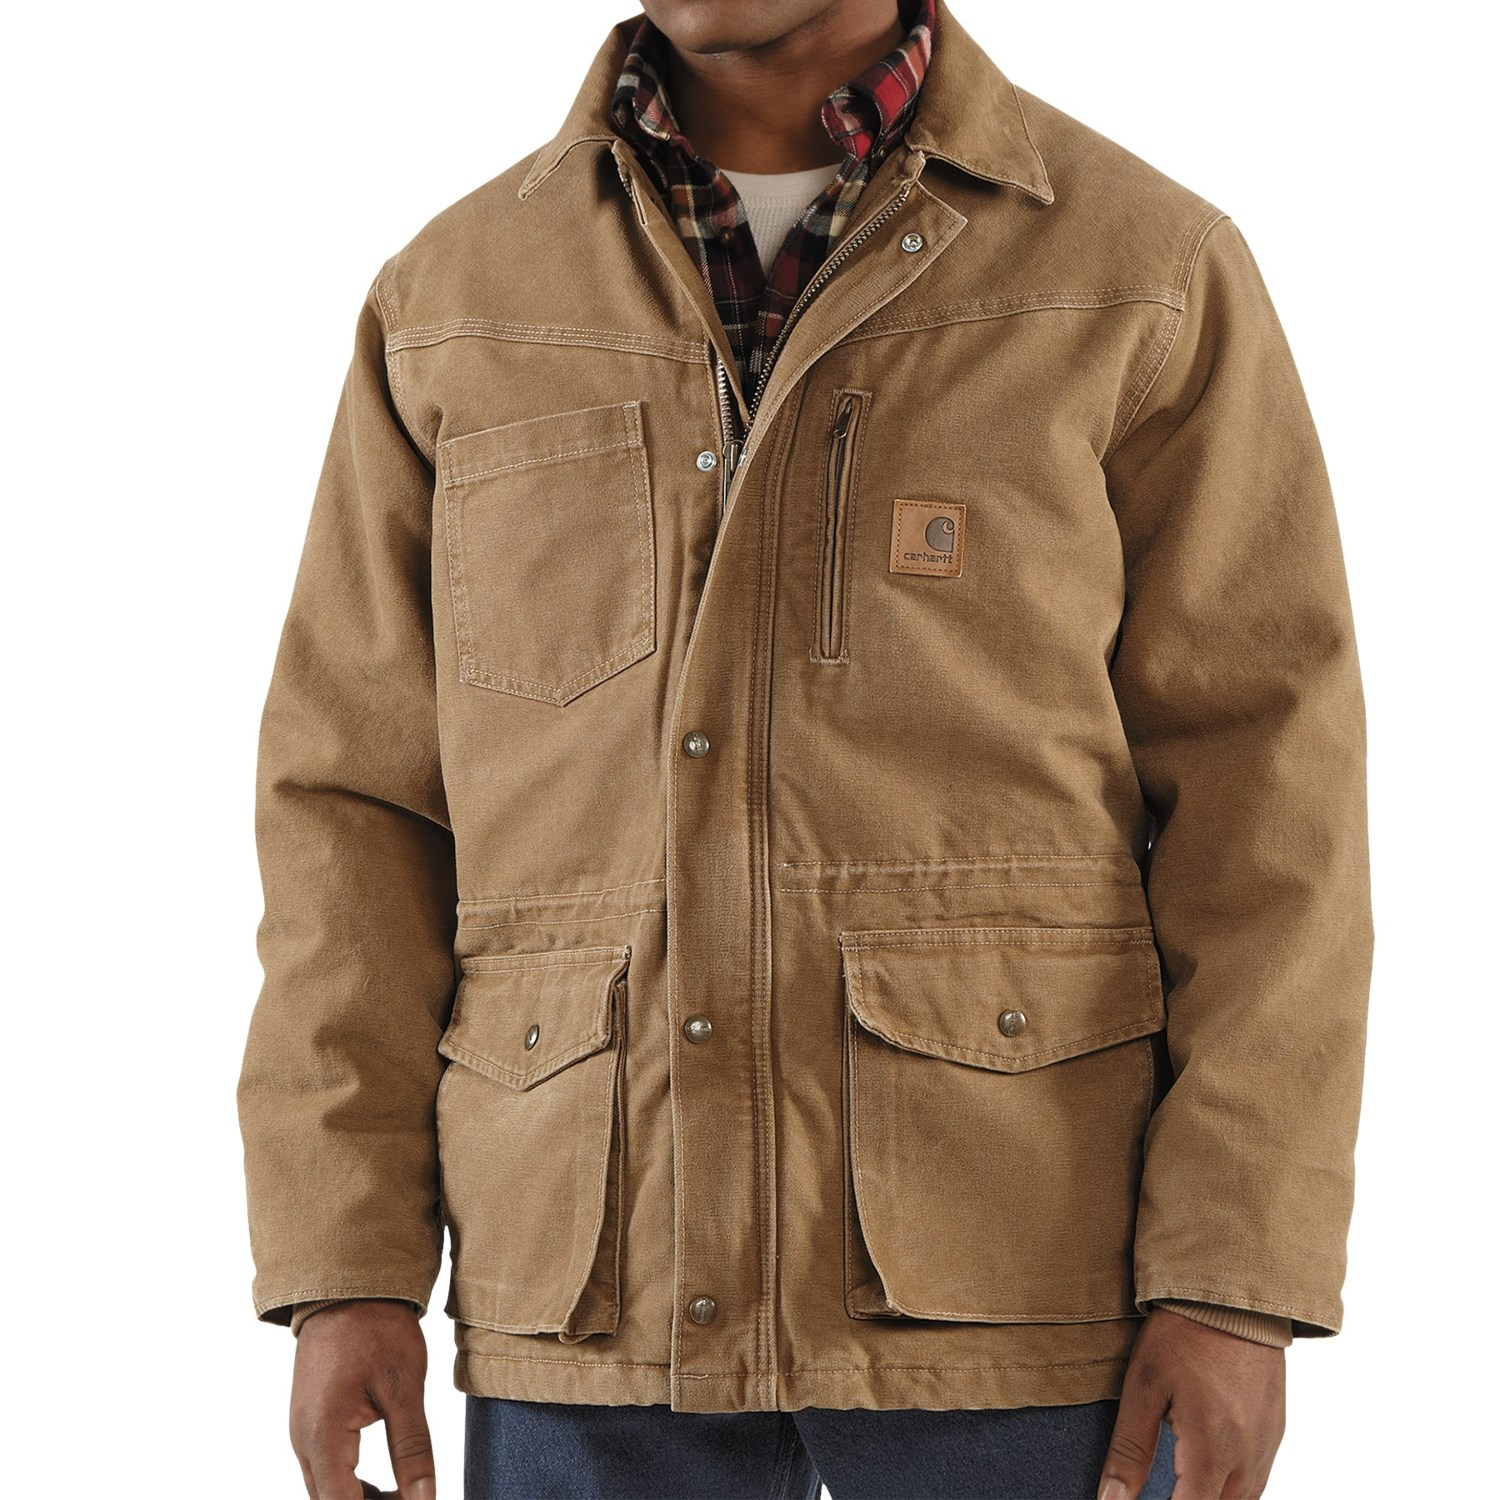 Live Large In Big & Tall Jackets For Men. Extra-large guys shopping for winter jackets and vests are in luck. DICK'S Sporting Goods carries a wide selection of big and tall jackets for men to take you from the streets, to the trails, to the slopes, and any other place .